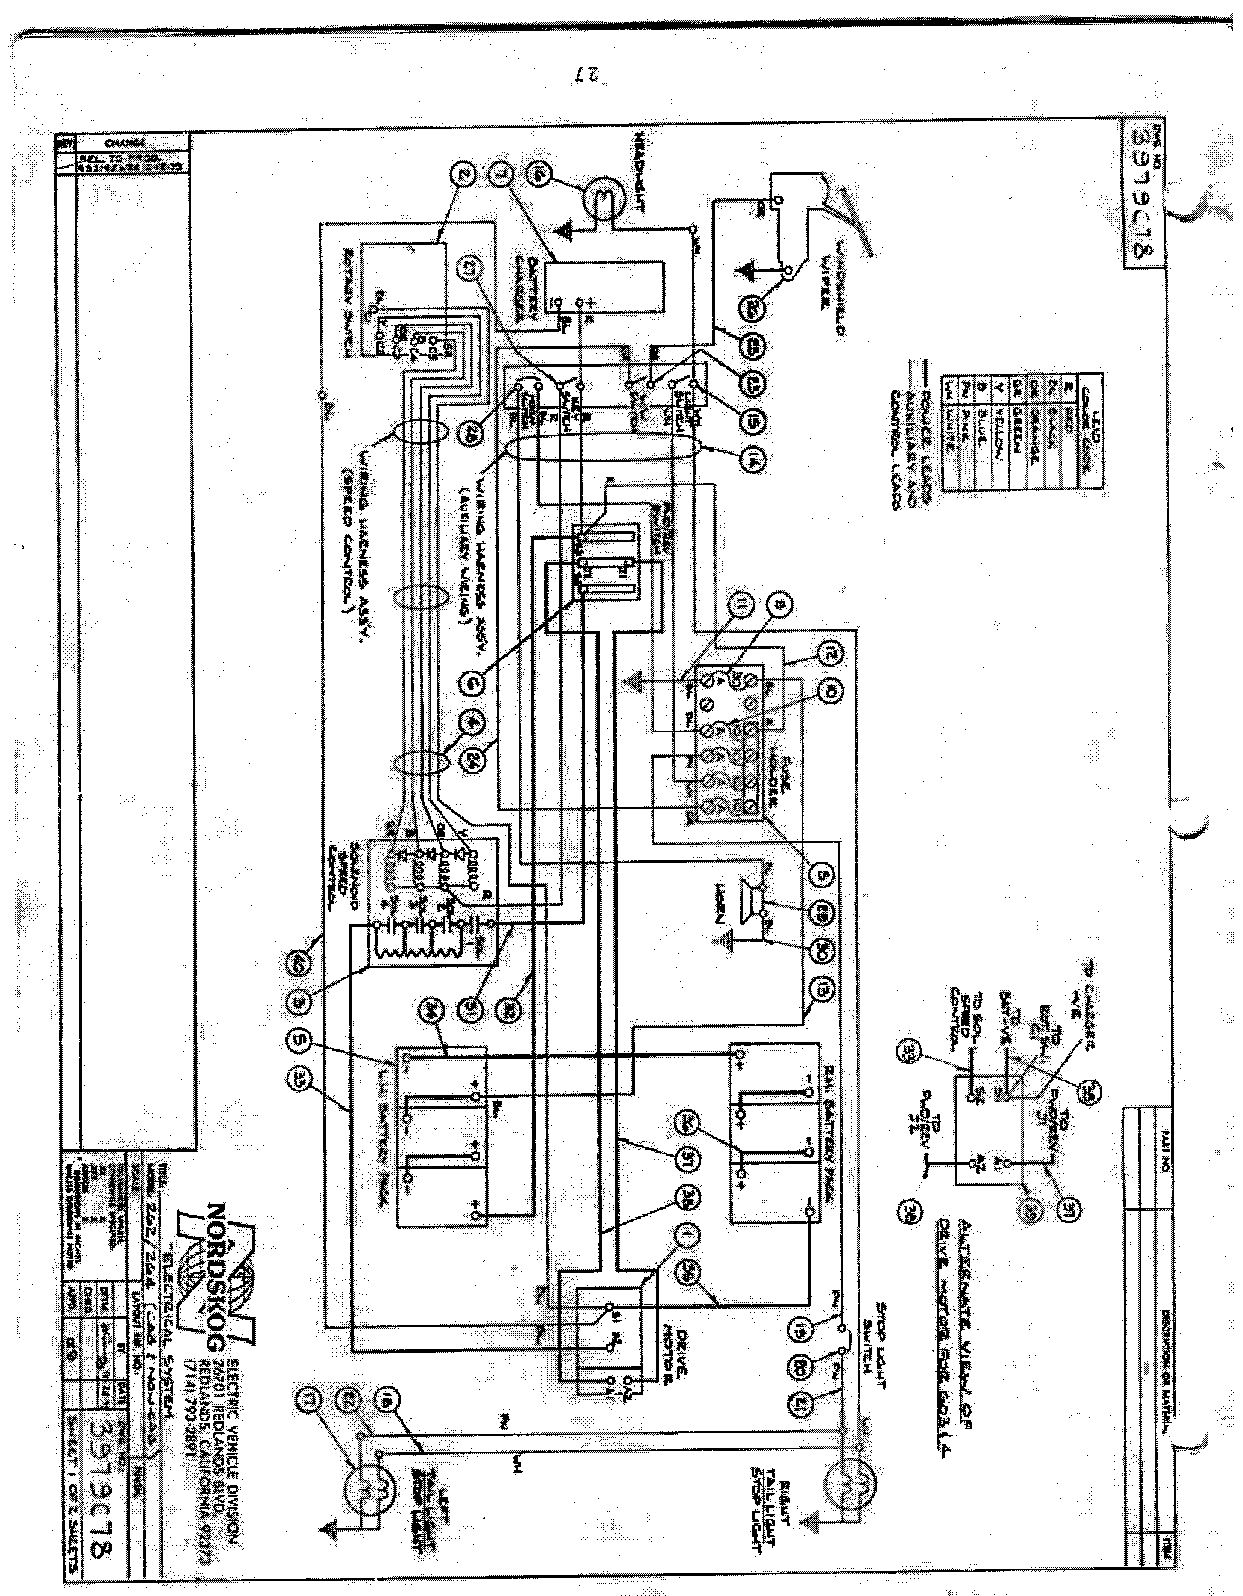 Vintage harley davidson golf cart wiring diagram